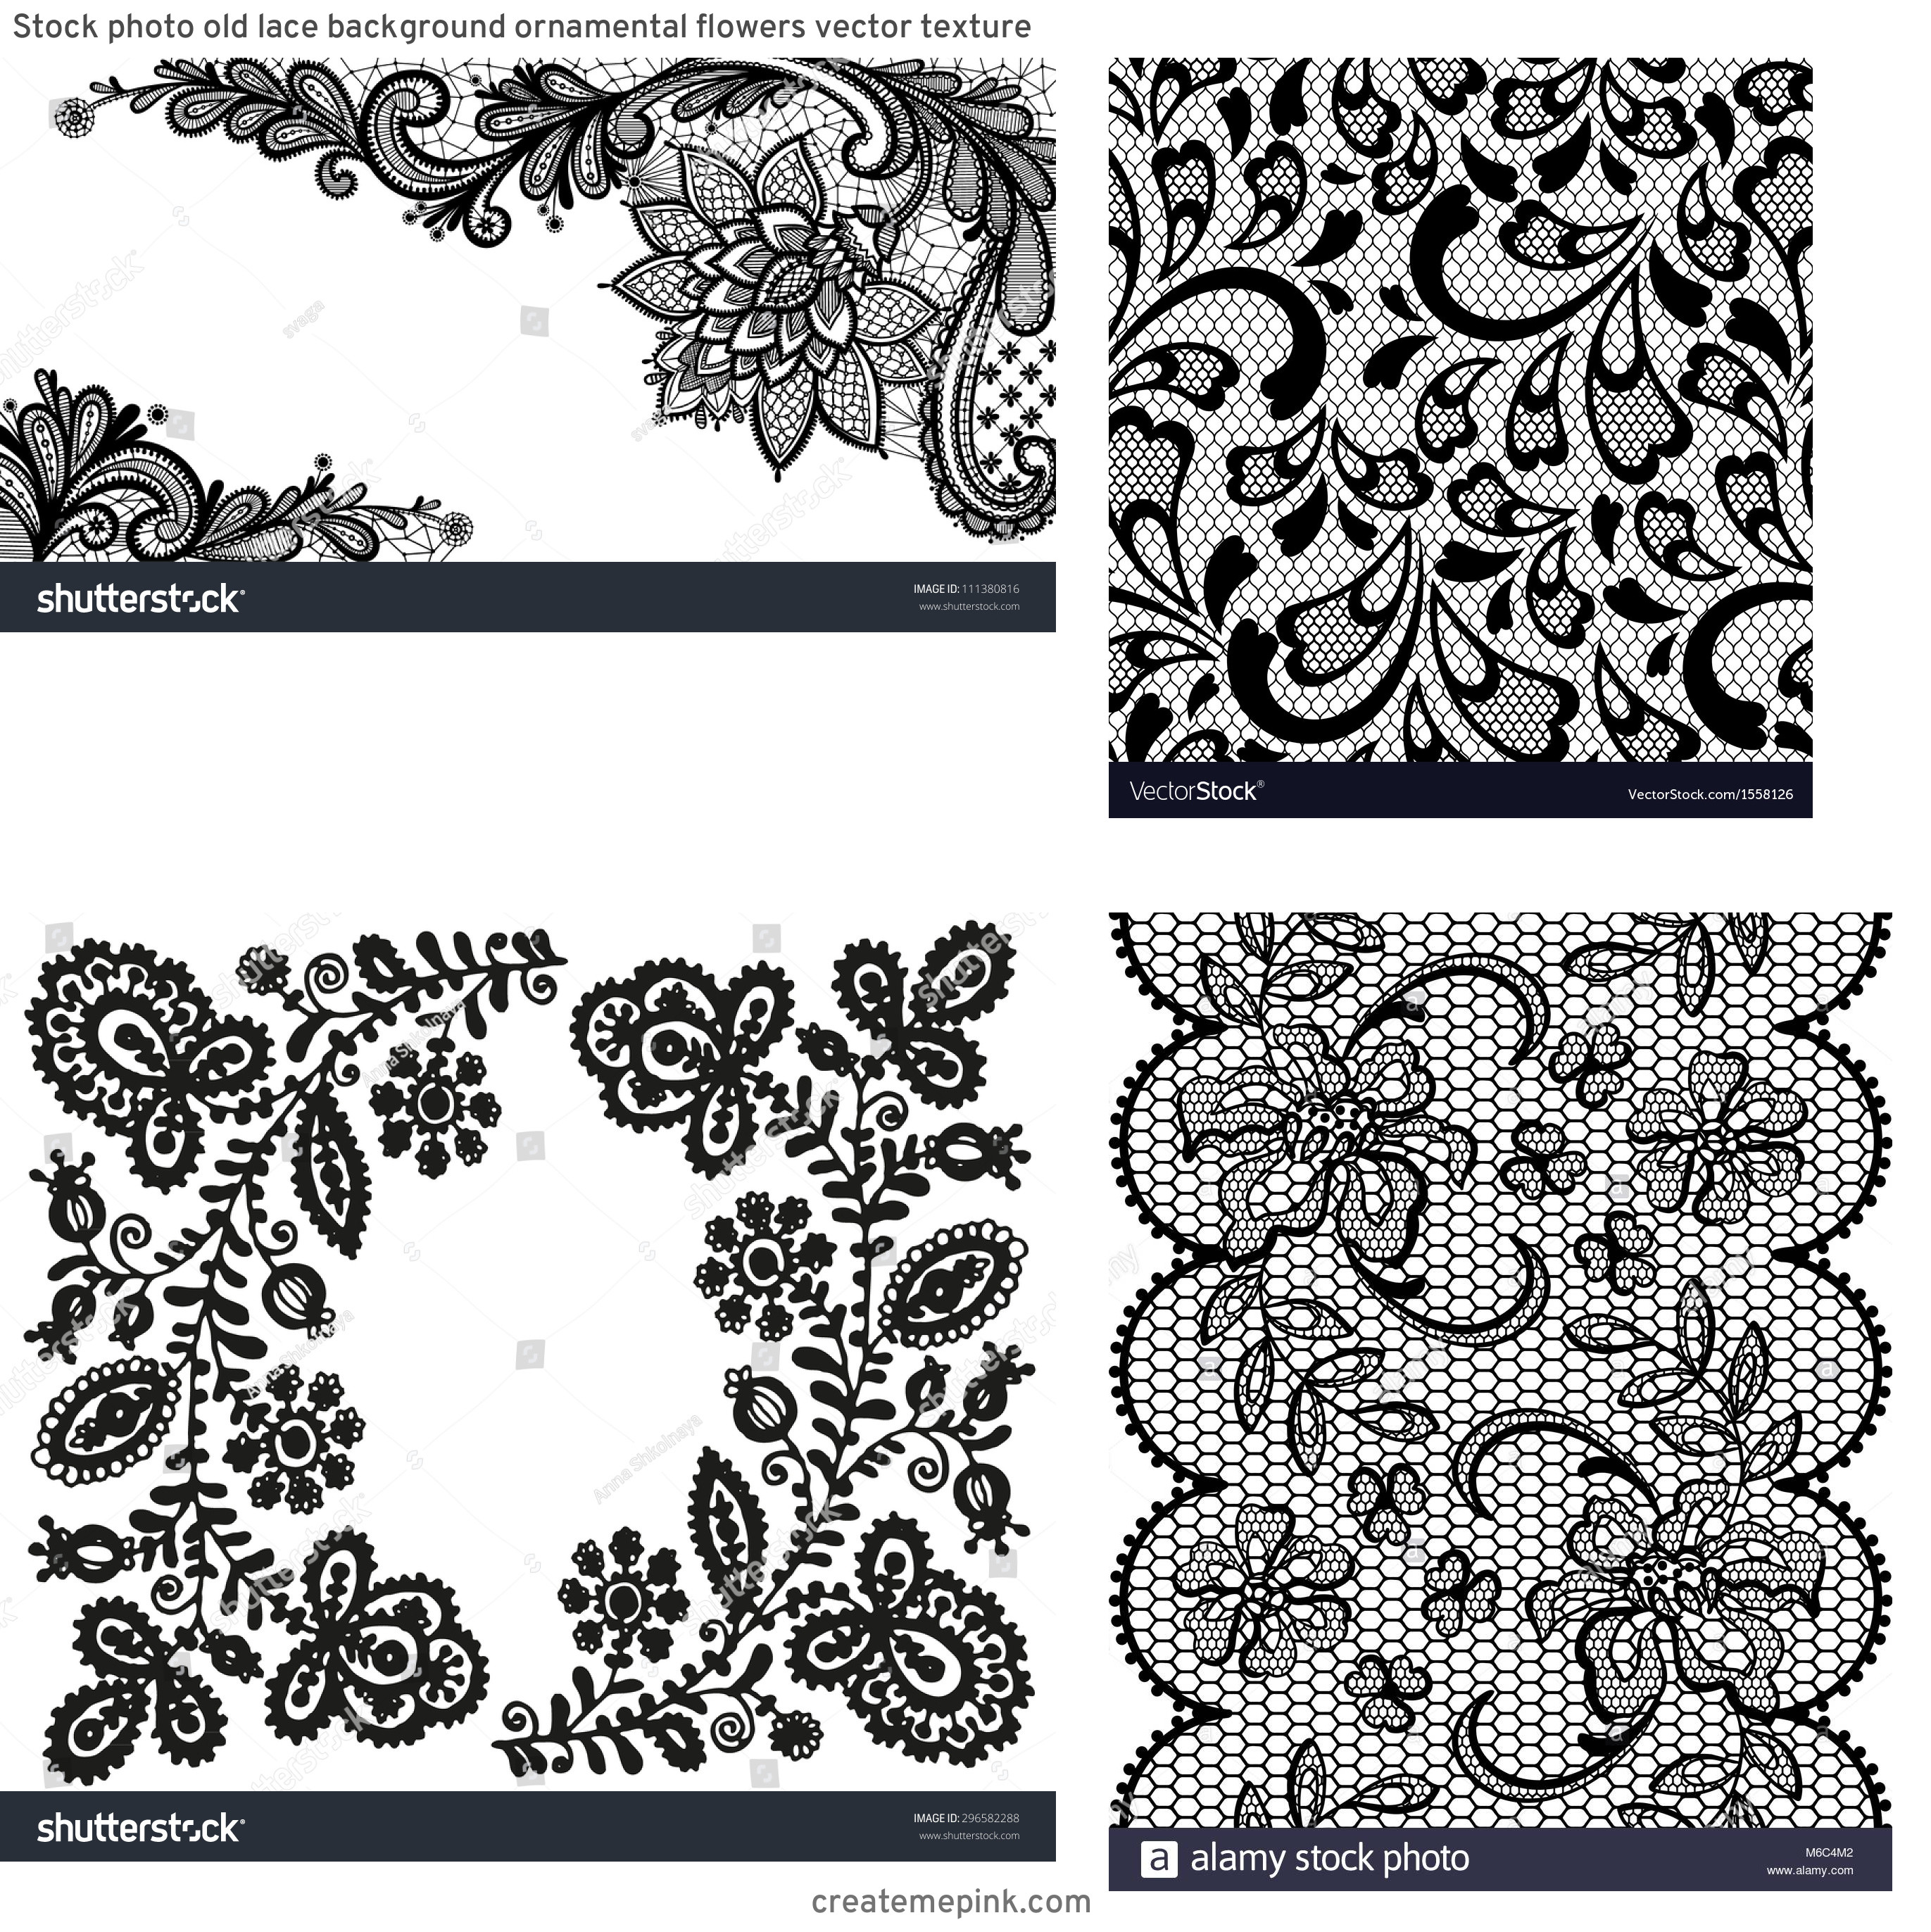 Vector Old Lace Black: Stock Photo Old Lace Background Ornamental Flowers Vector Texture